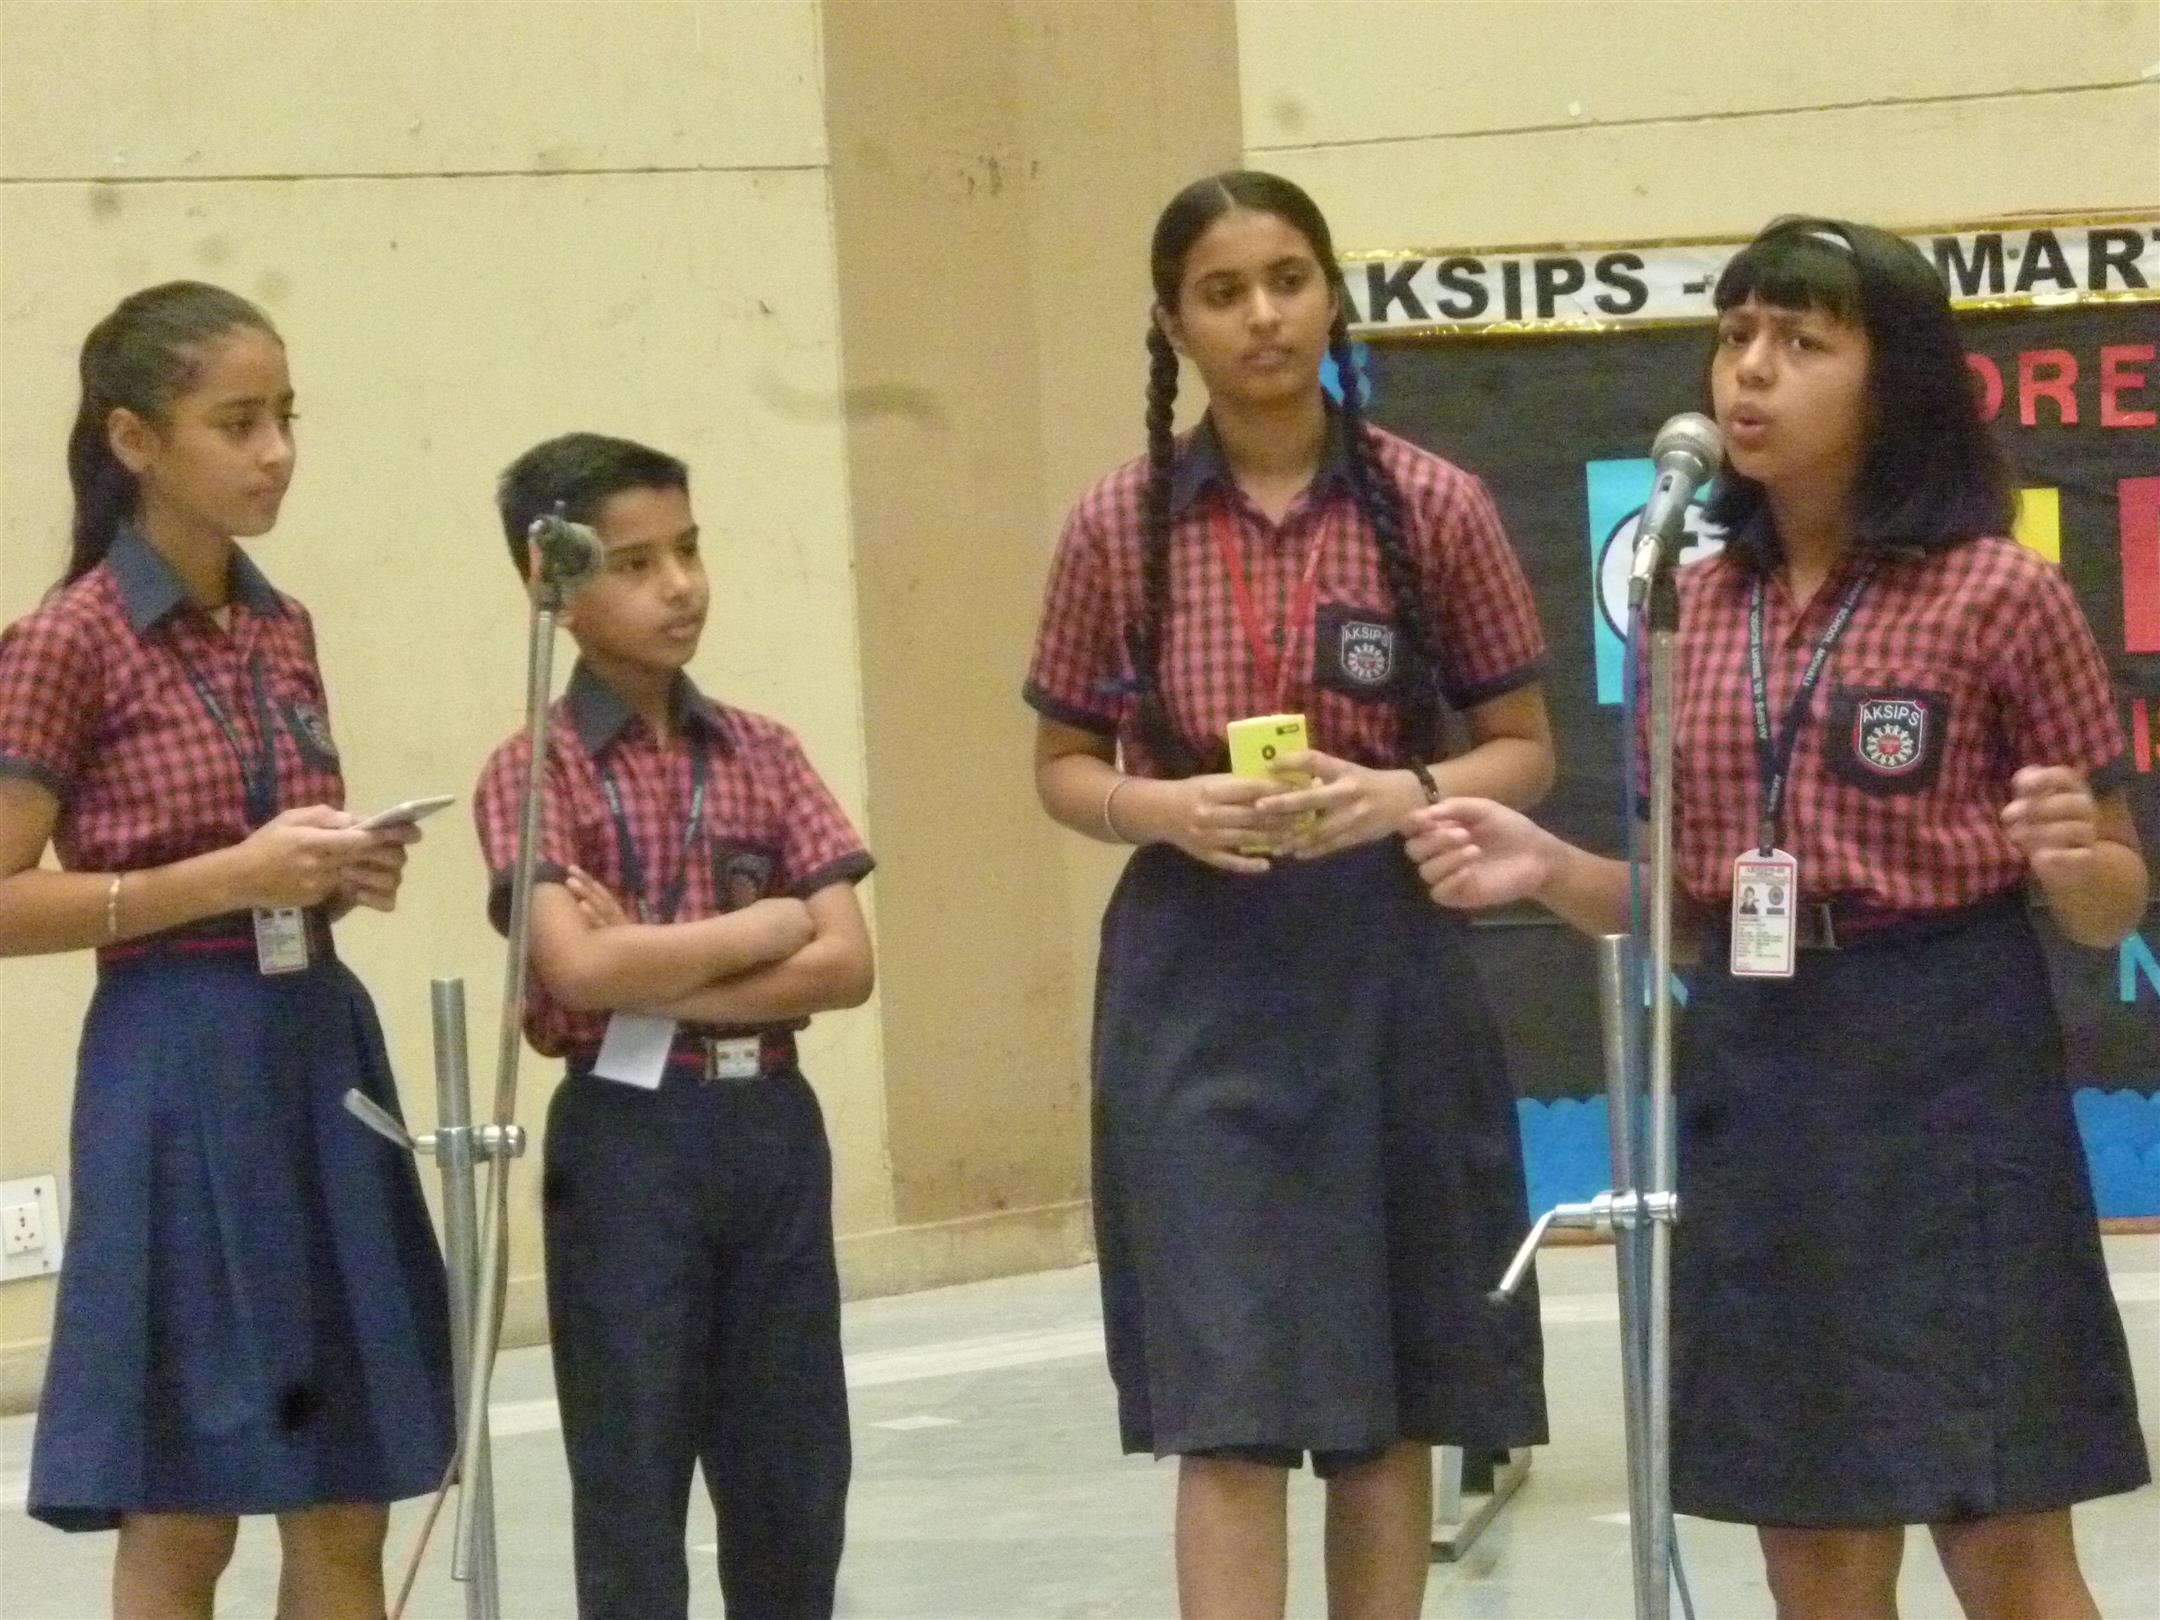 Special assembly on the harmful effects of cyber addiction | AKSIPS 65 Chandigarh